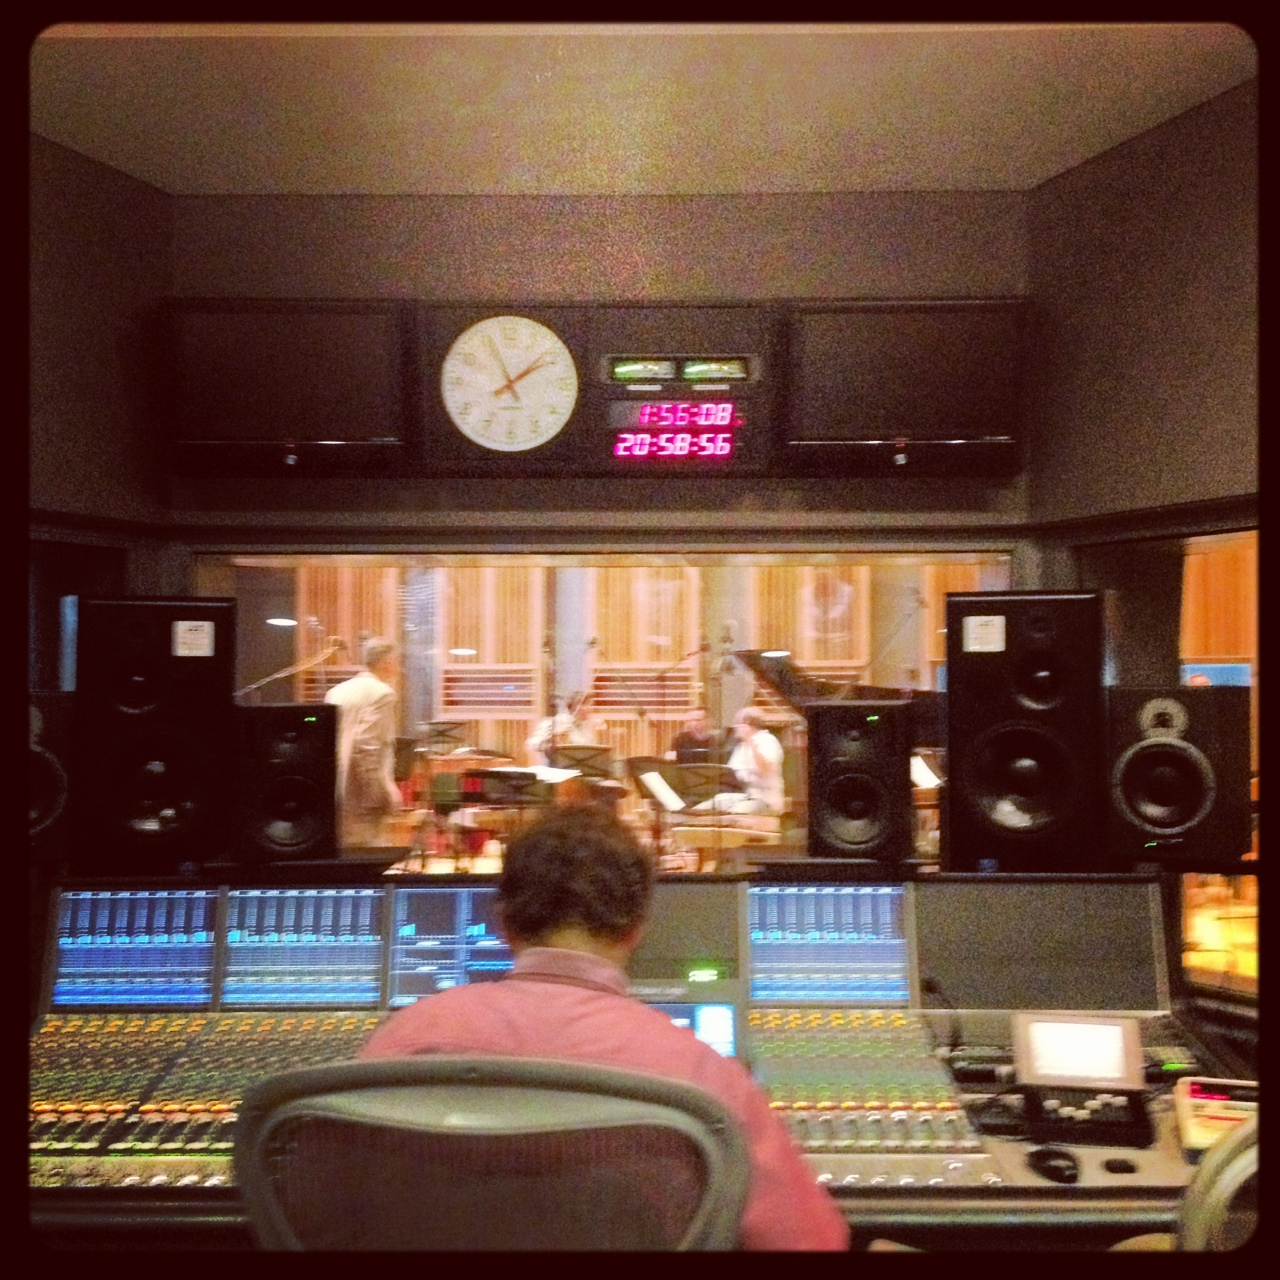 The control room. That's our producer in the driver's seat.